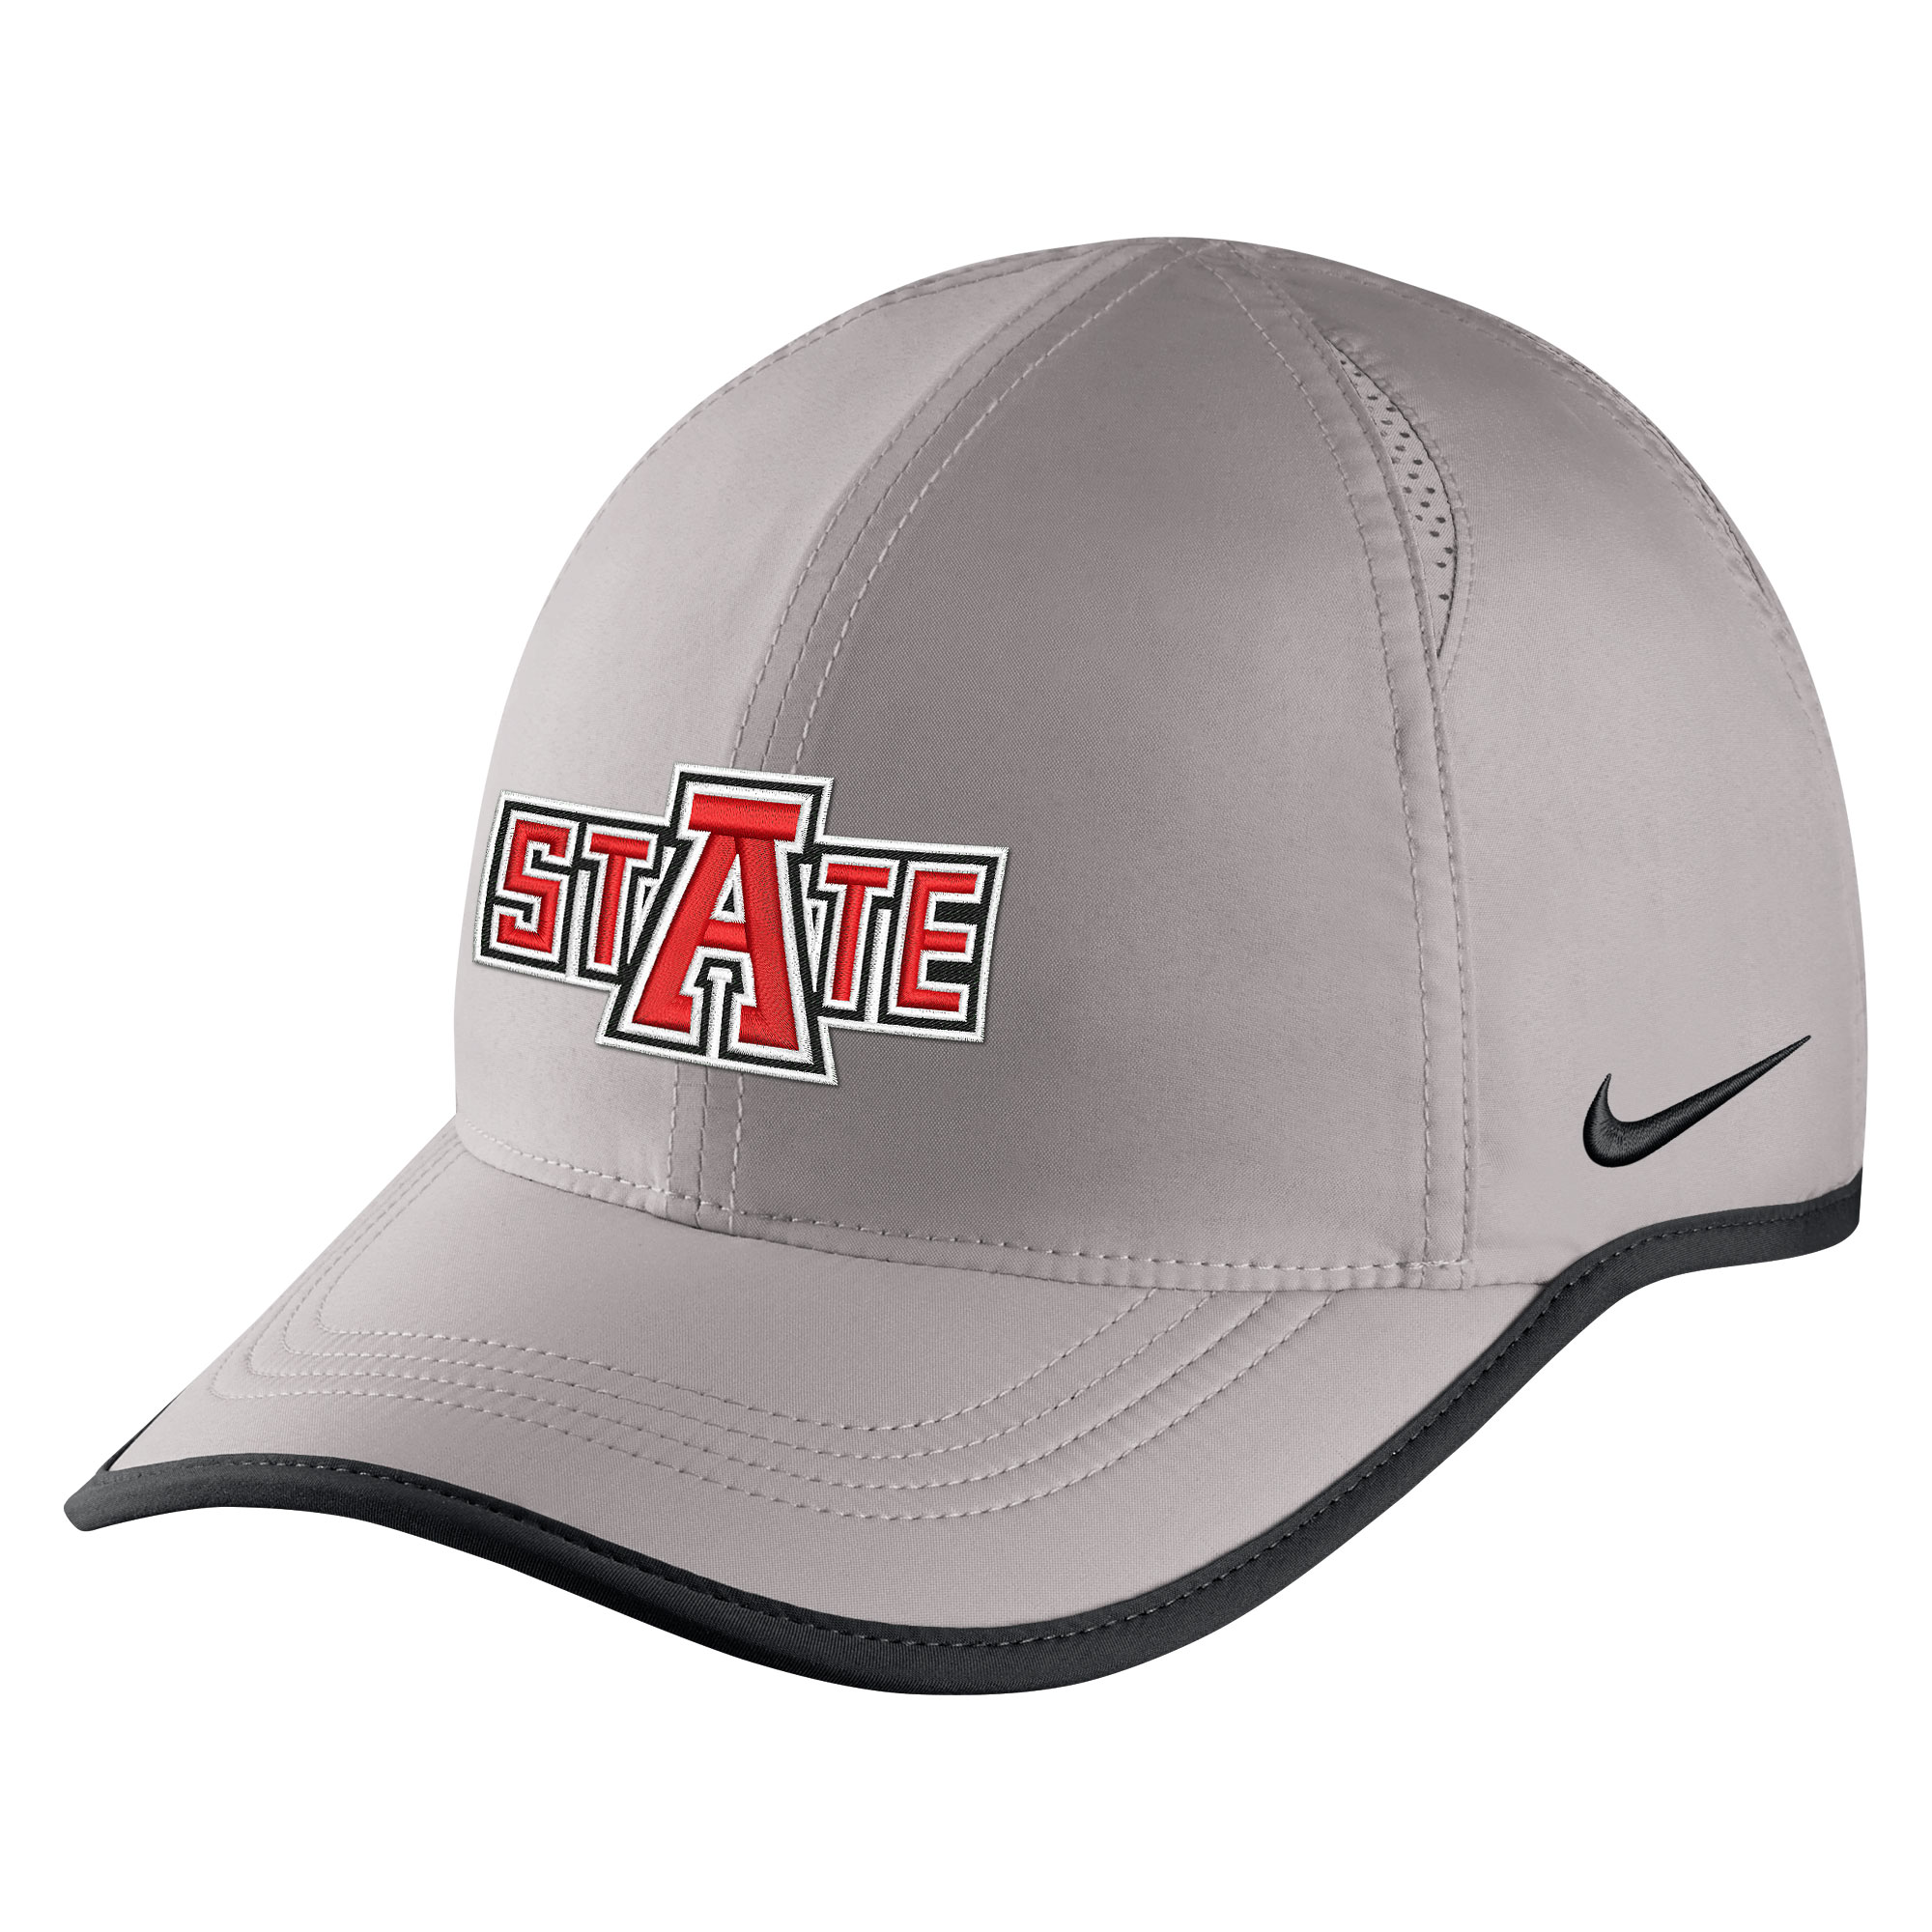 Red Wolves Featherlight Cap